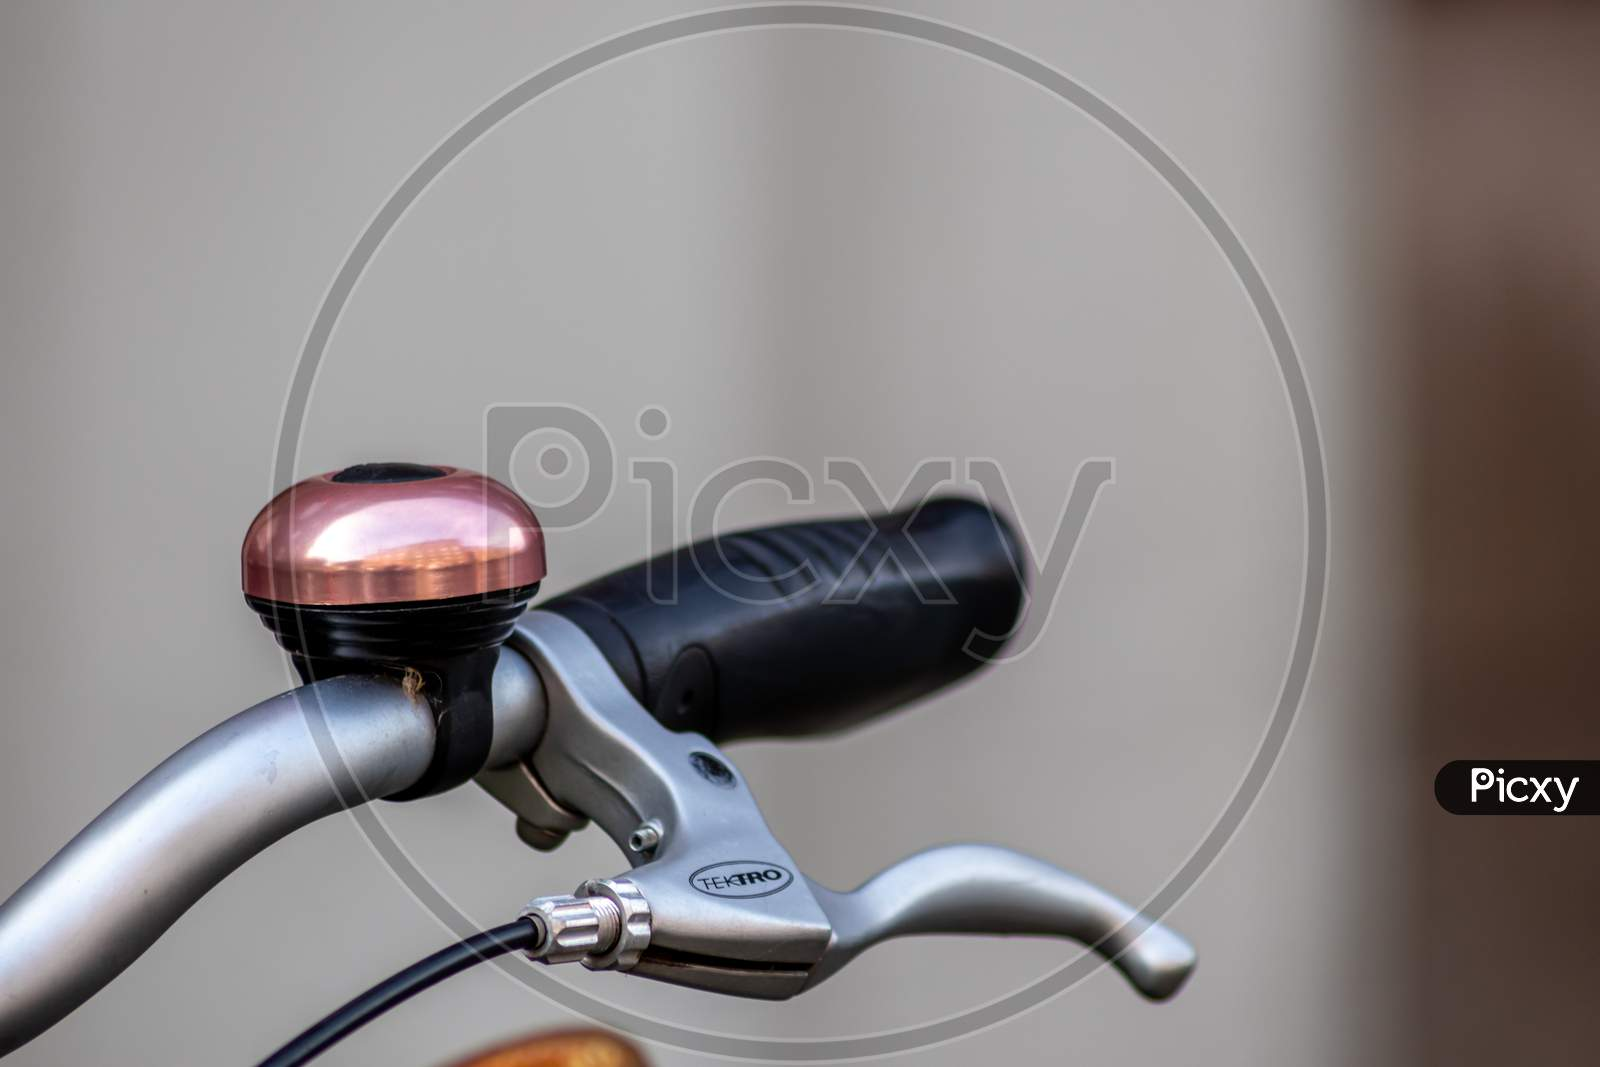 Beautiful bike bell with a shiny finish at a silver metal bicycle handlebar with a black grip and a lot of copy space and a blurred background shows safety aspects and emission free transportation